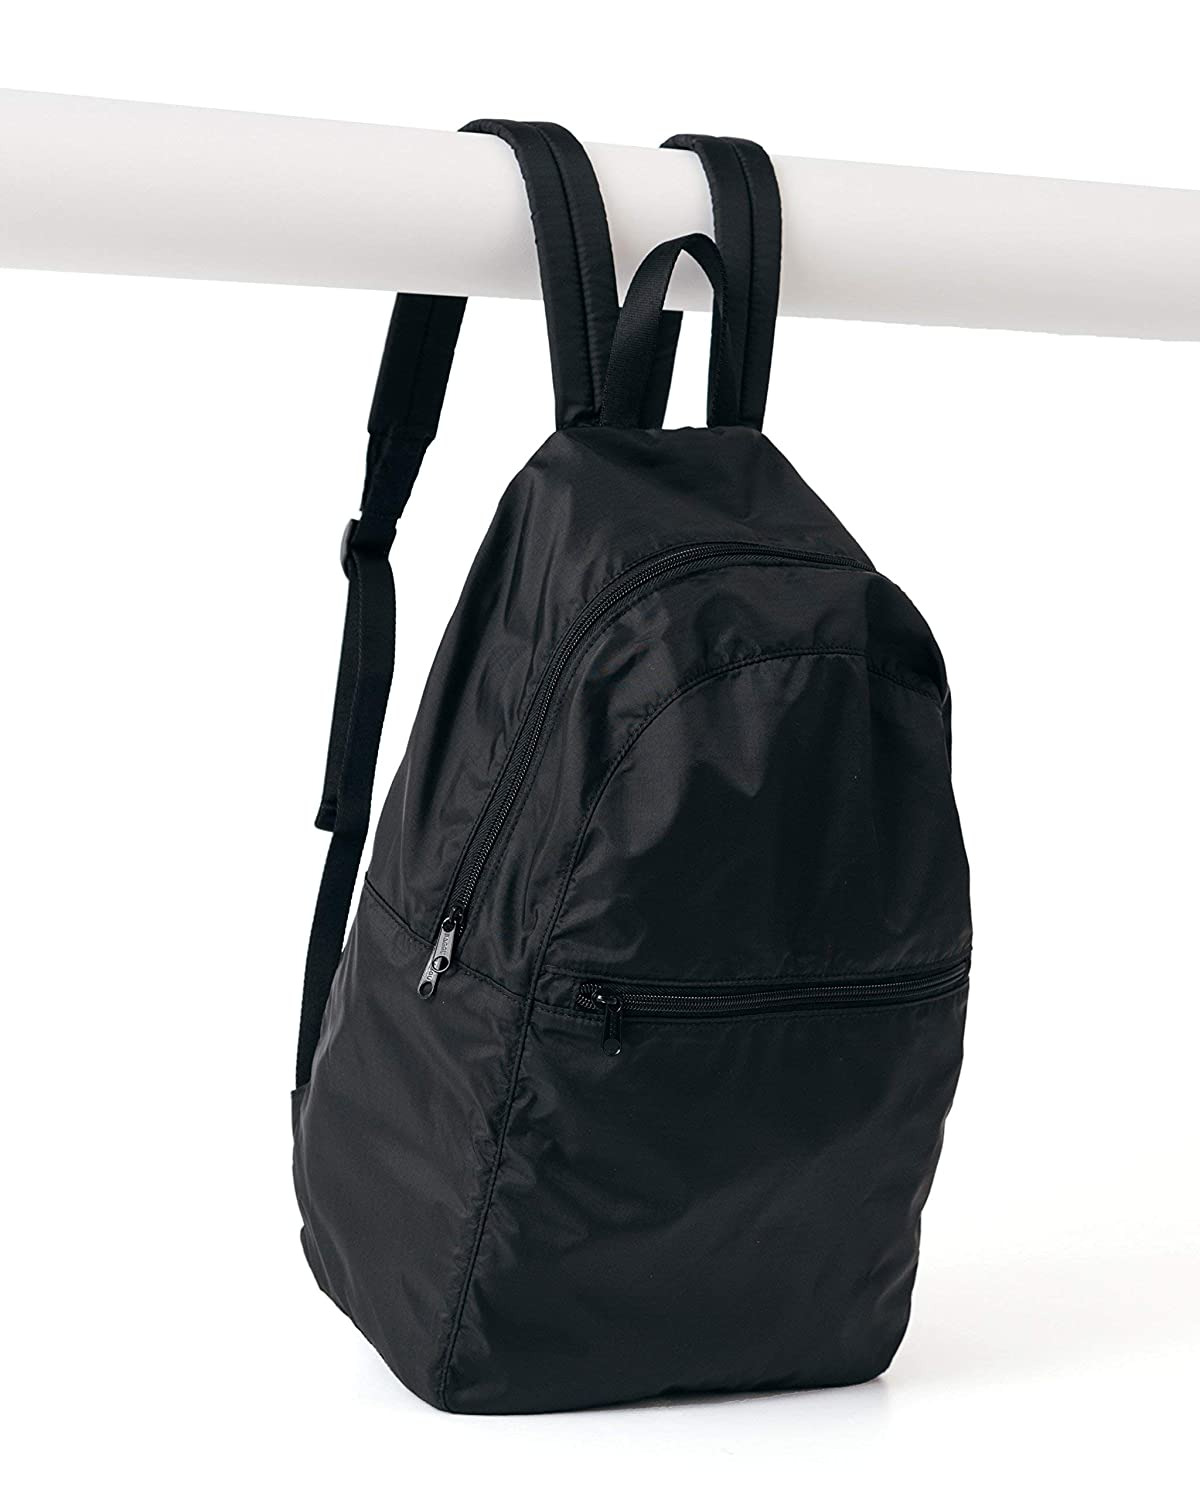 Ripstop Nylon Backpack, Lightweight Packable Backpack Ideal for Travel or the Gym, Black [並行輸入品] B07R4TKLCZ